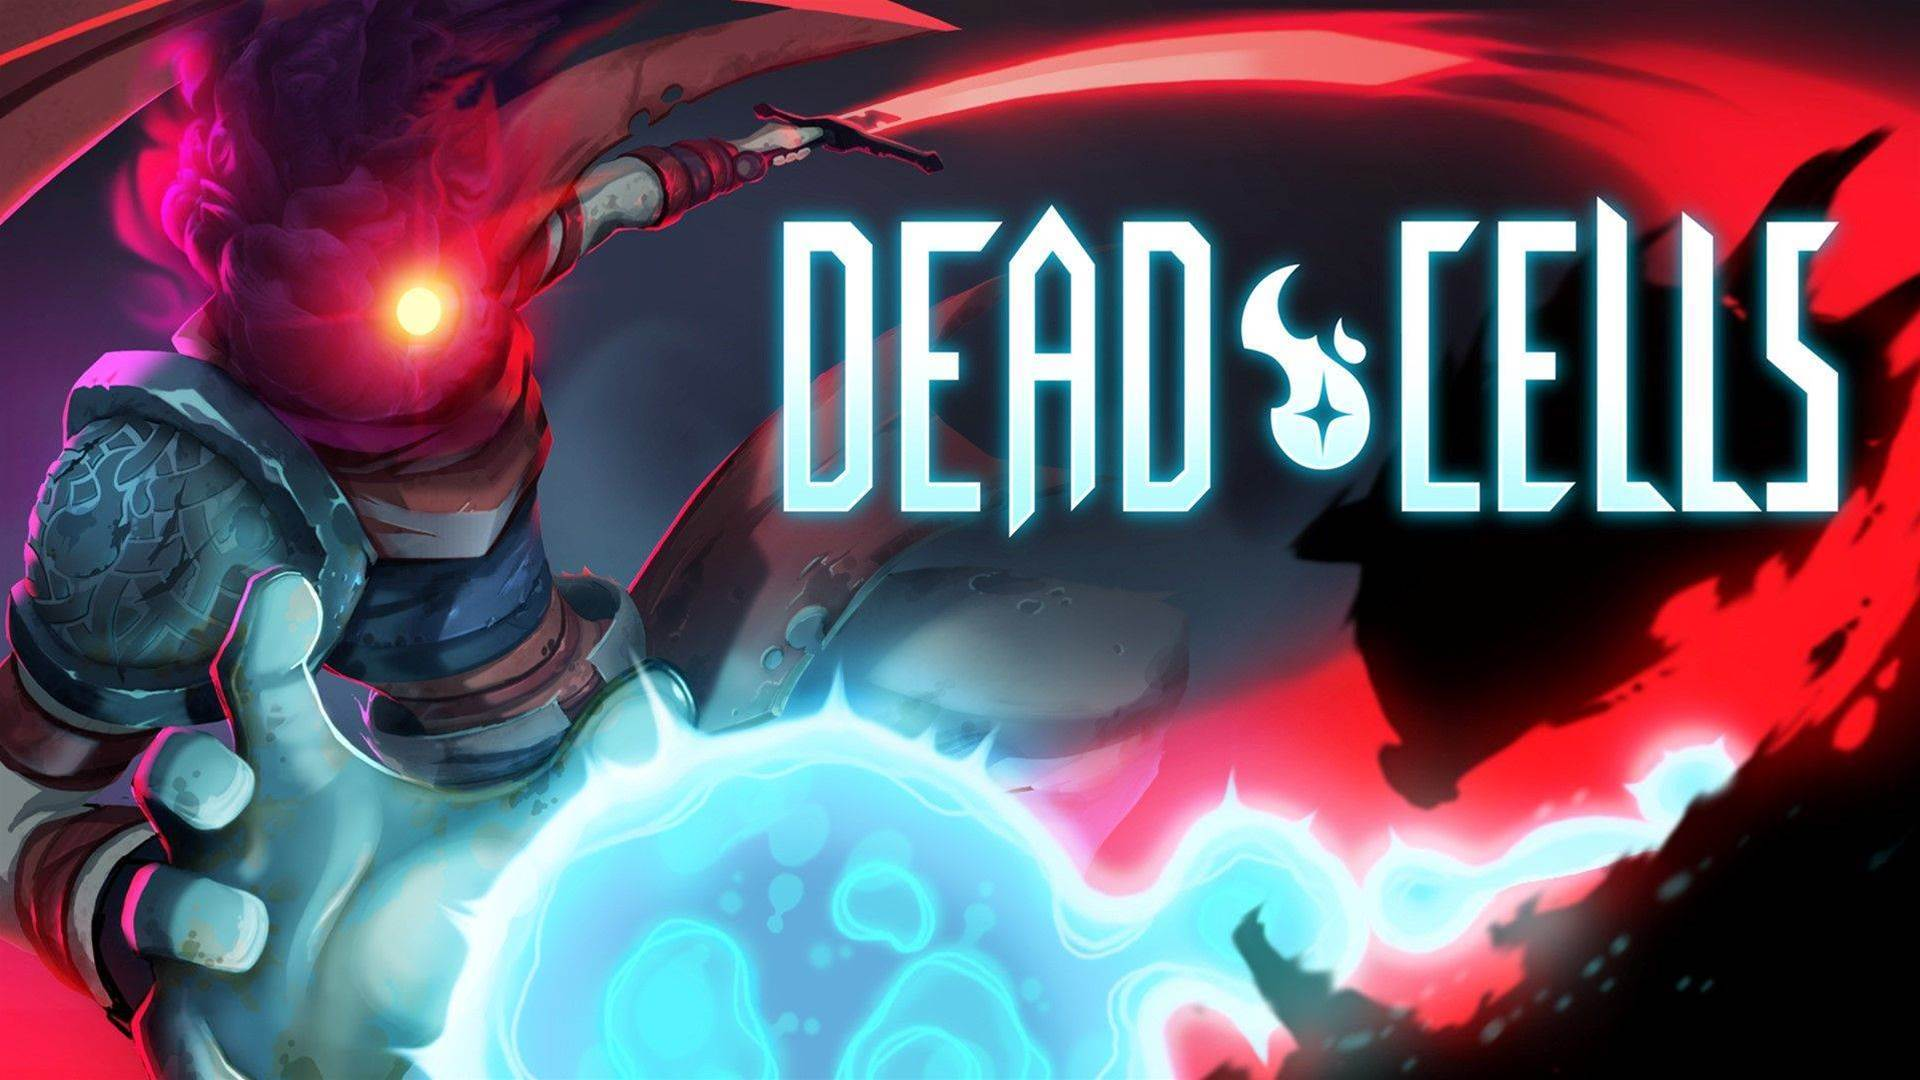 A deadly cell of Dead Cells screens